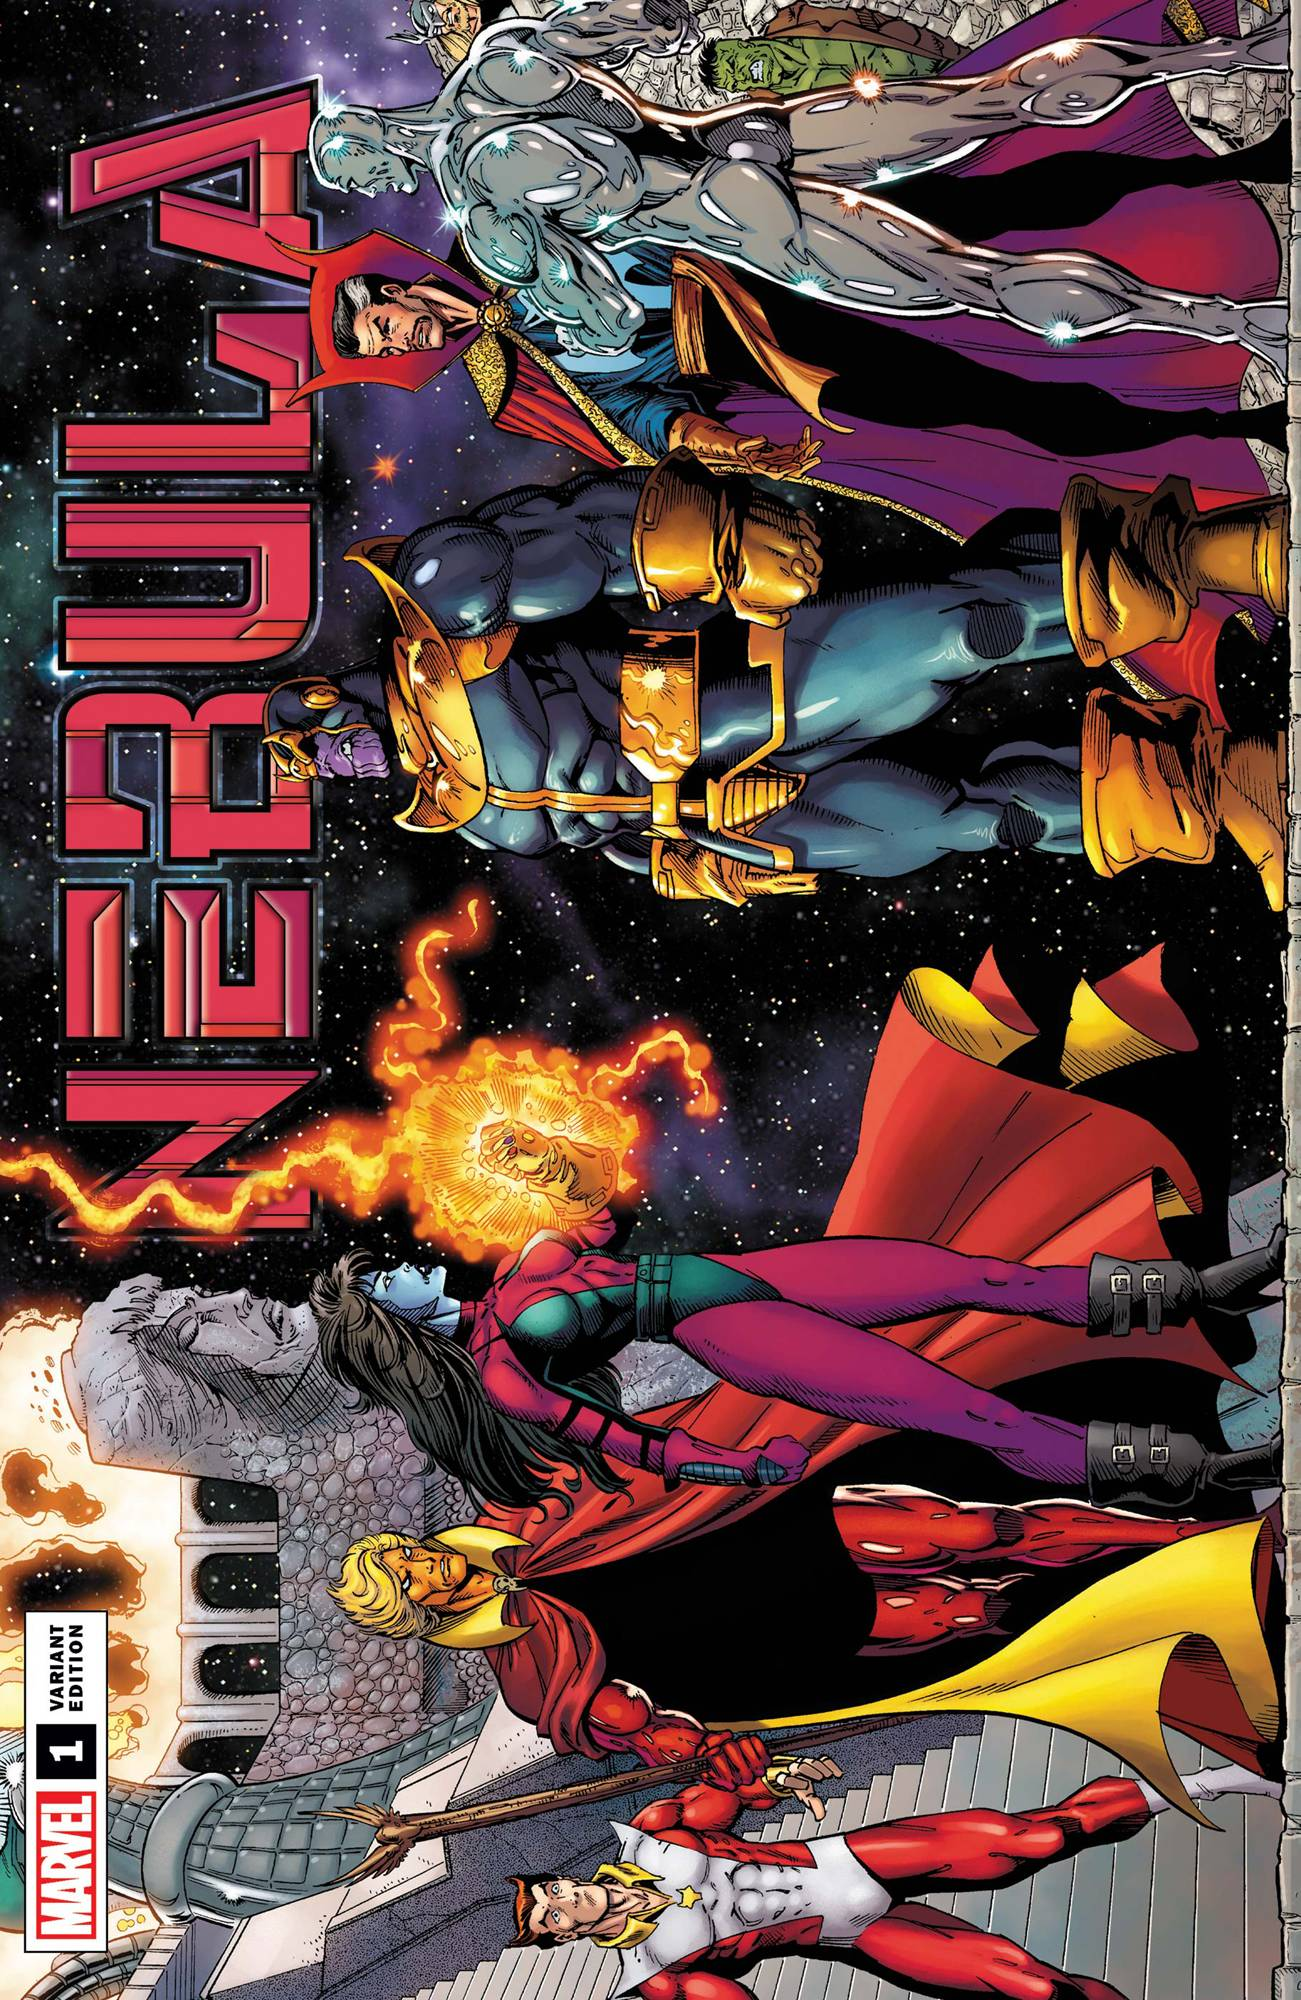 NEBULA #1 (OF 5) RON LIM REMASTERED VAR